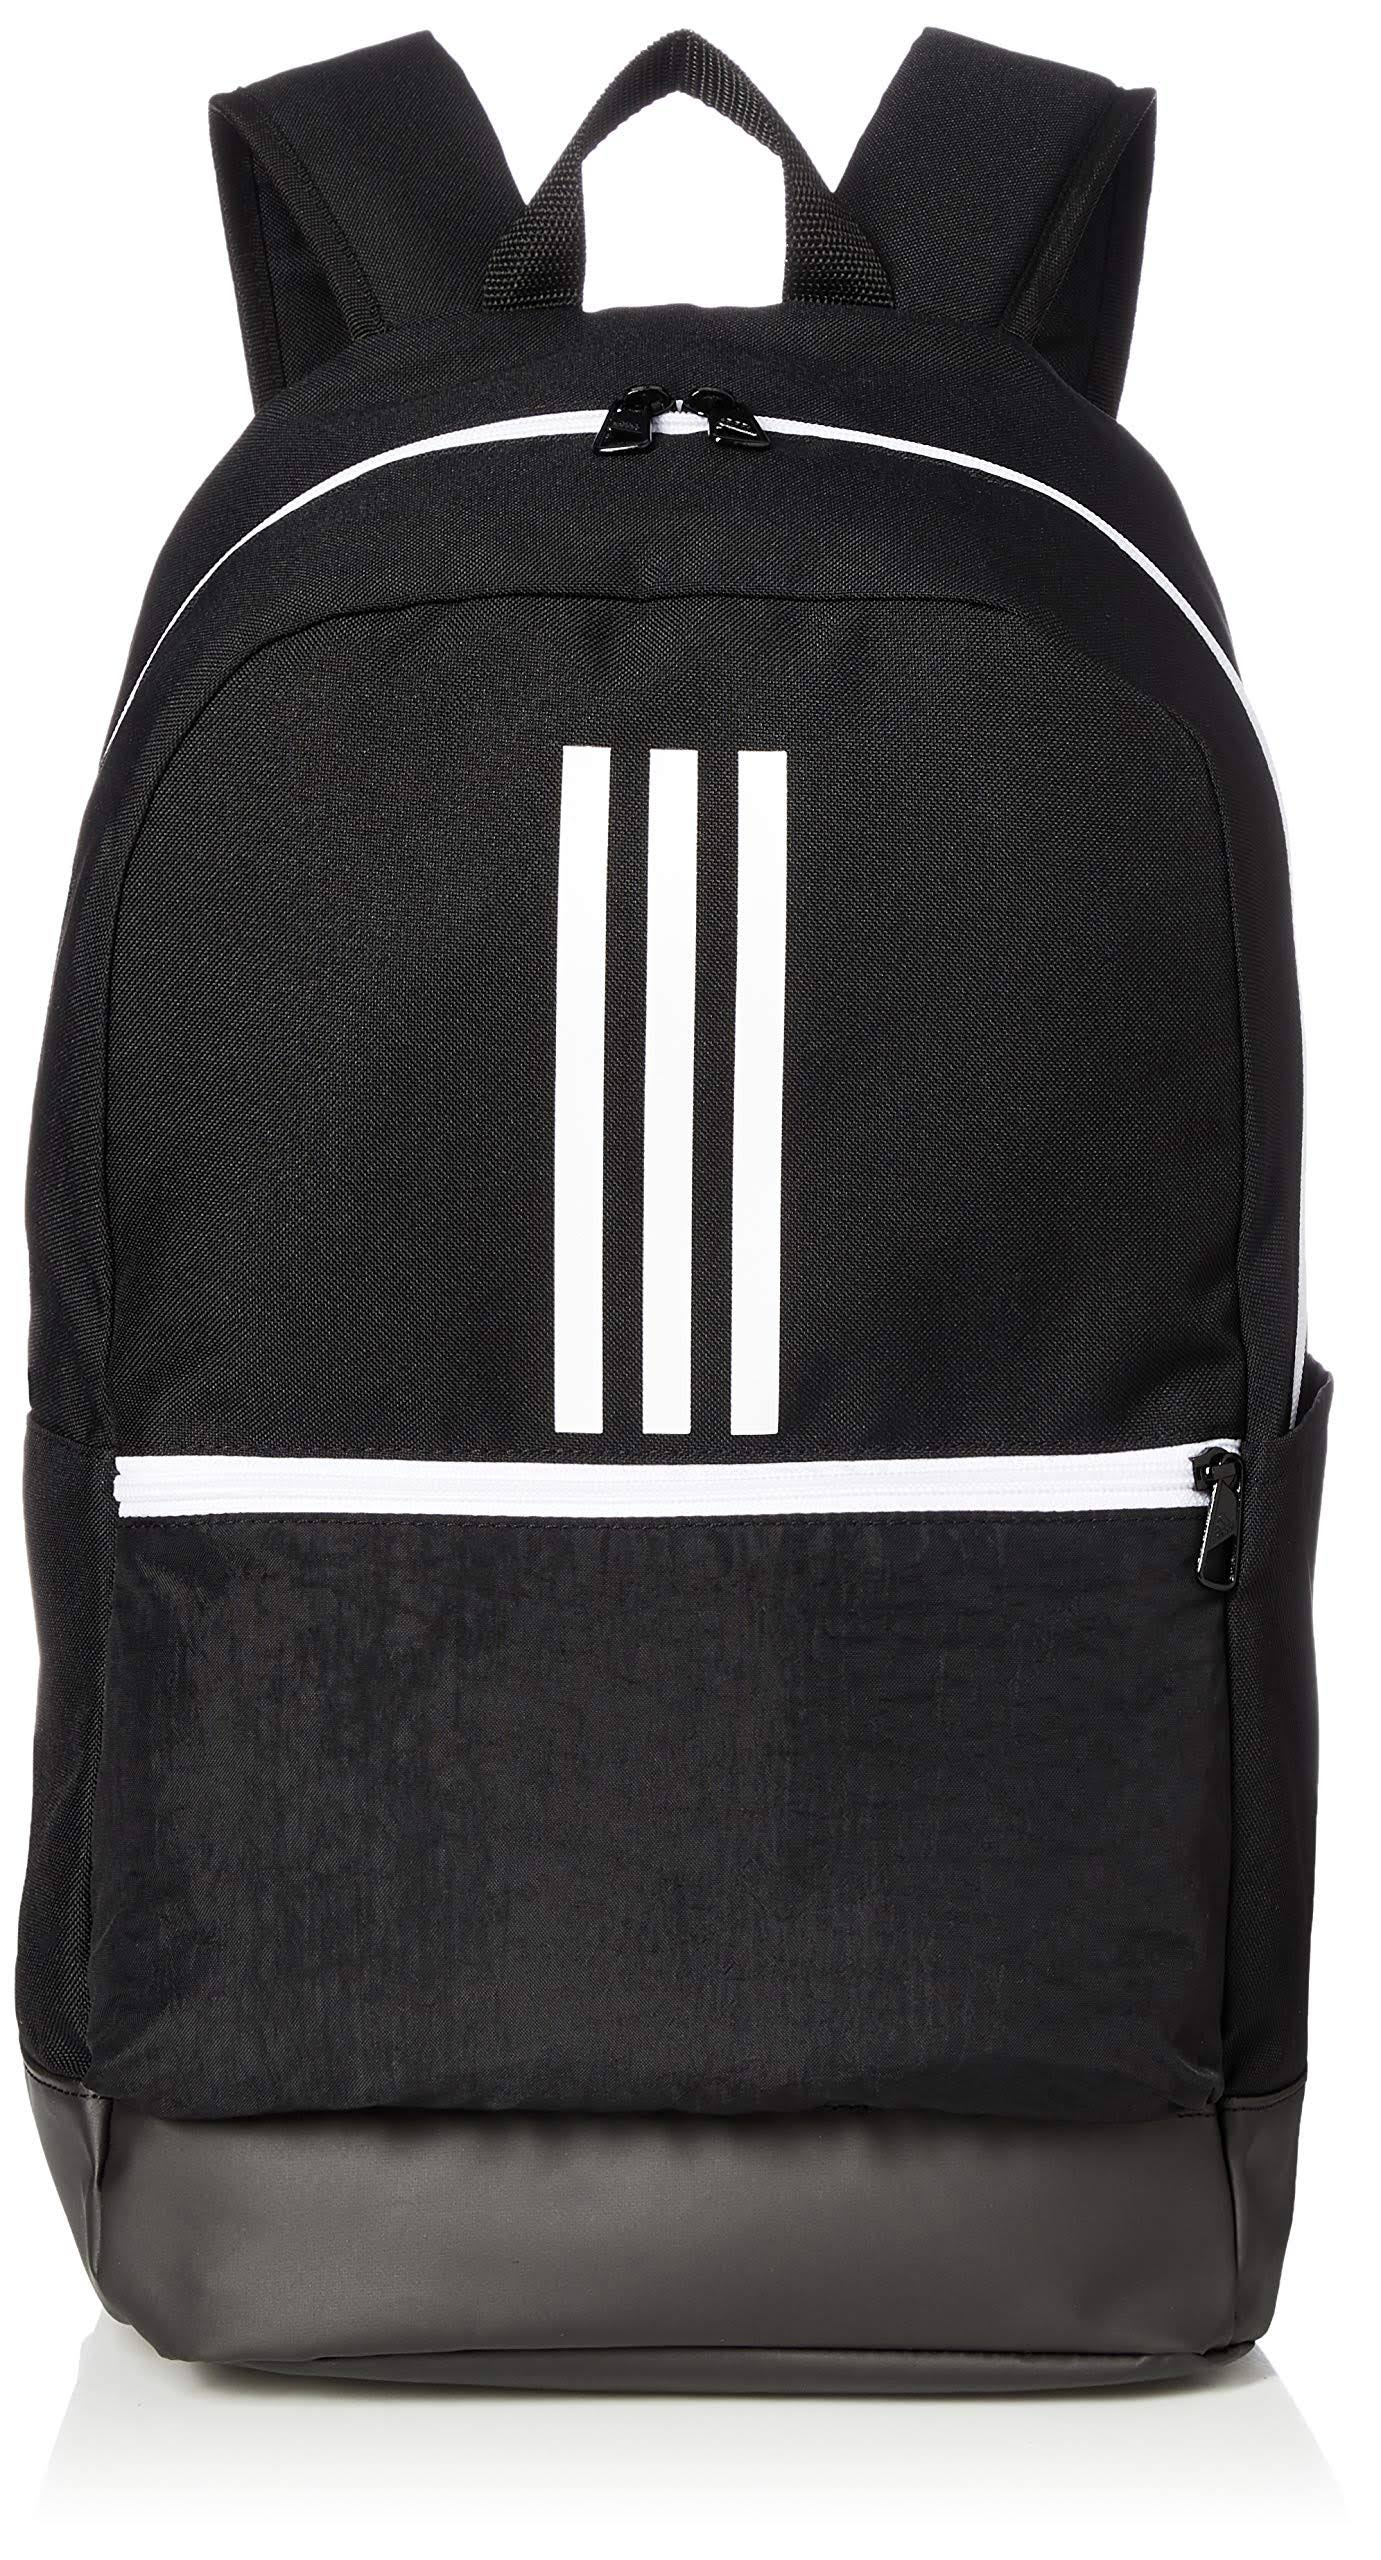 Adidas Classic Backpack 3 Stripes